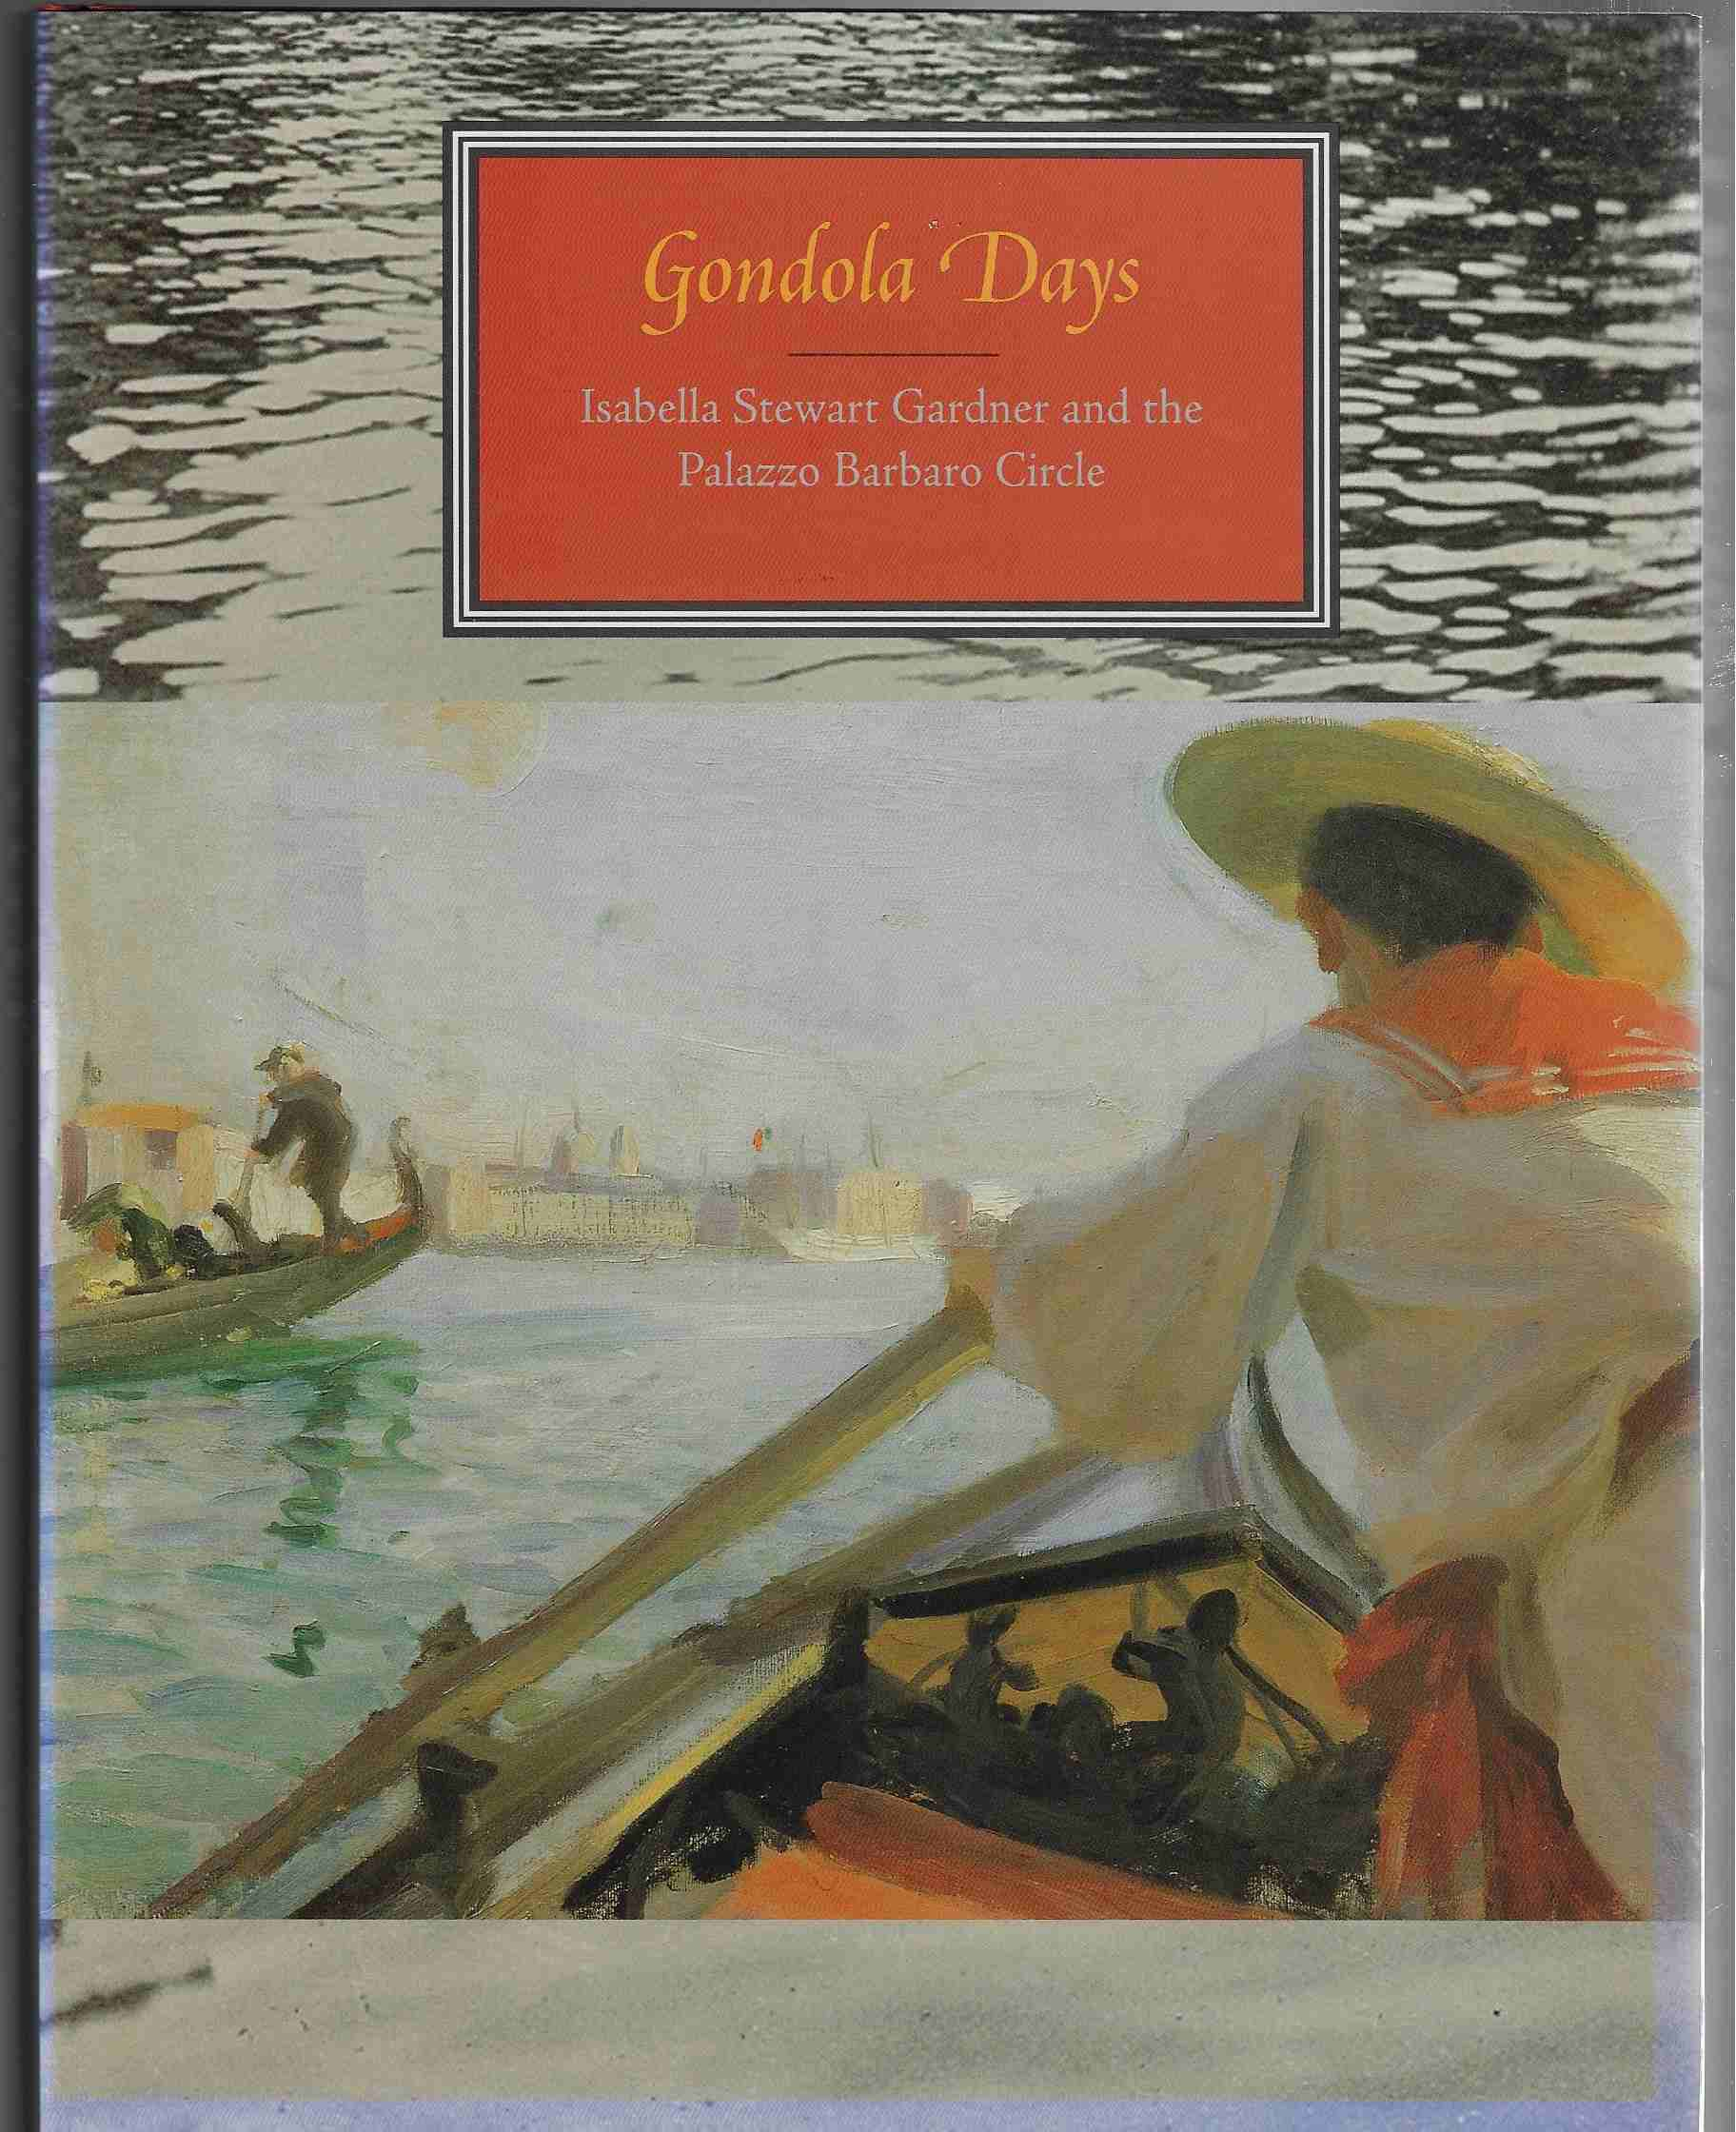 Image for Gondola Days Isabella Stewart Gardner and the Palazzo Barbaro Circle